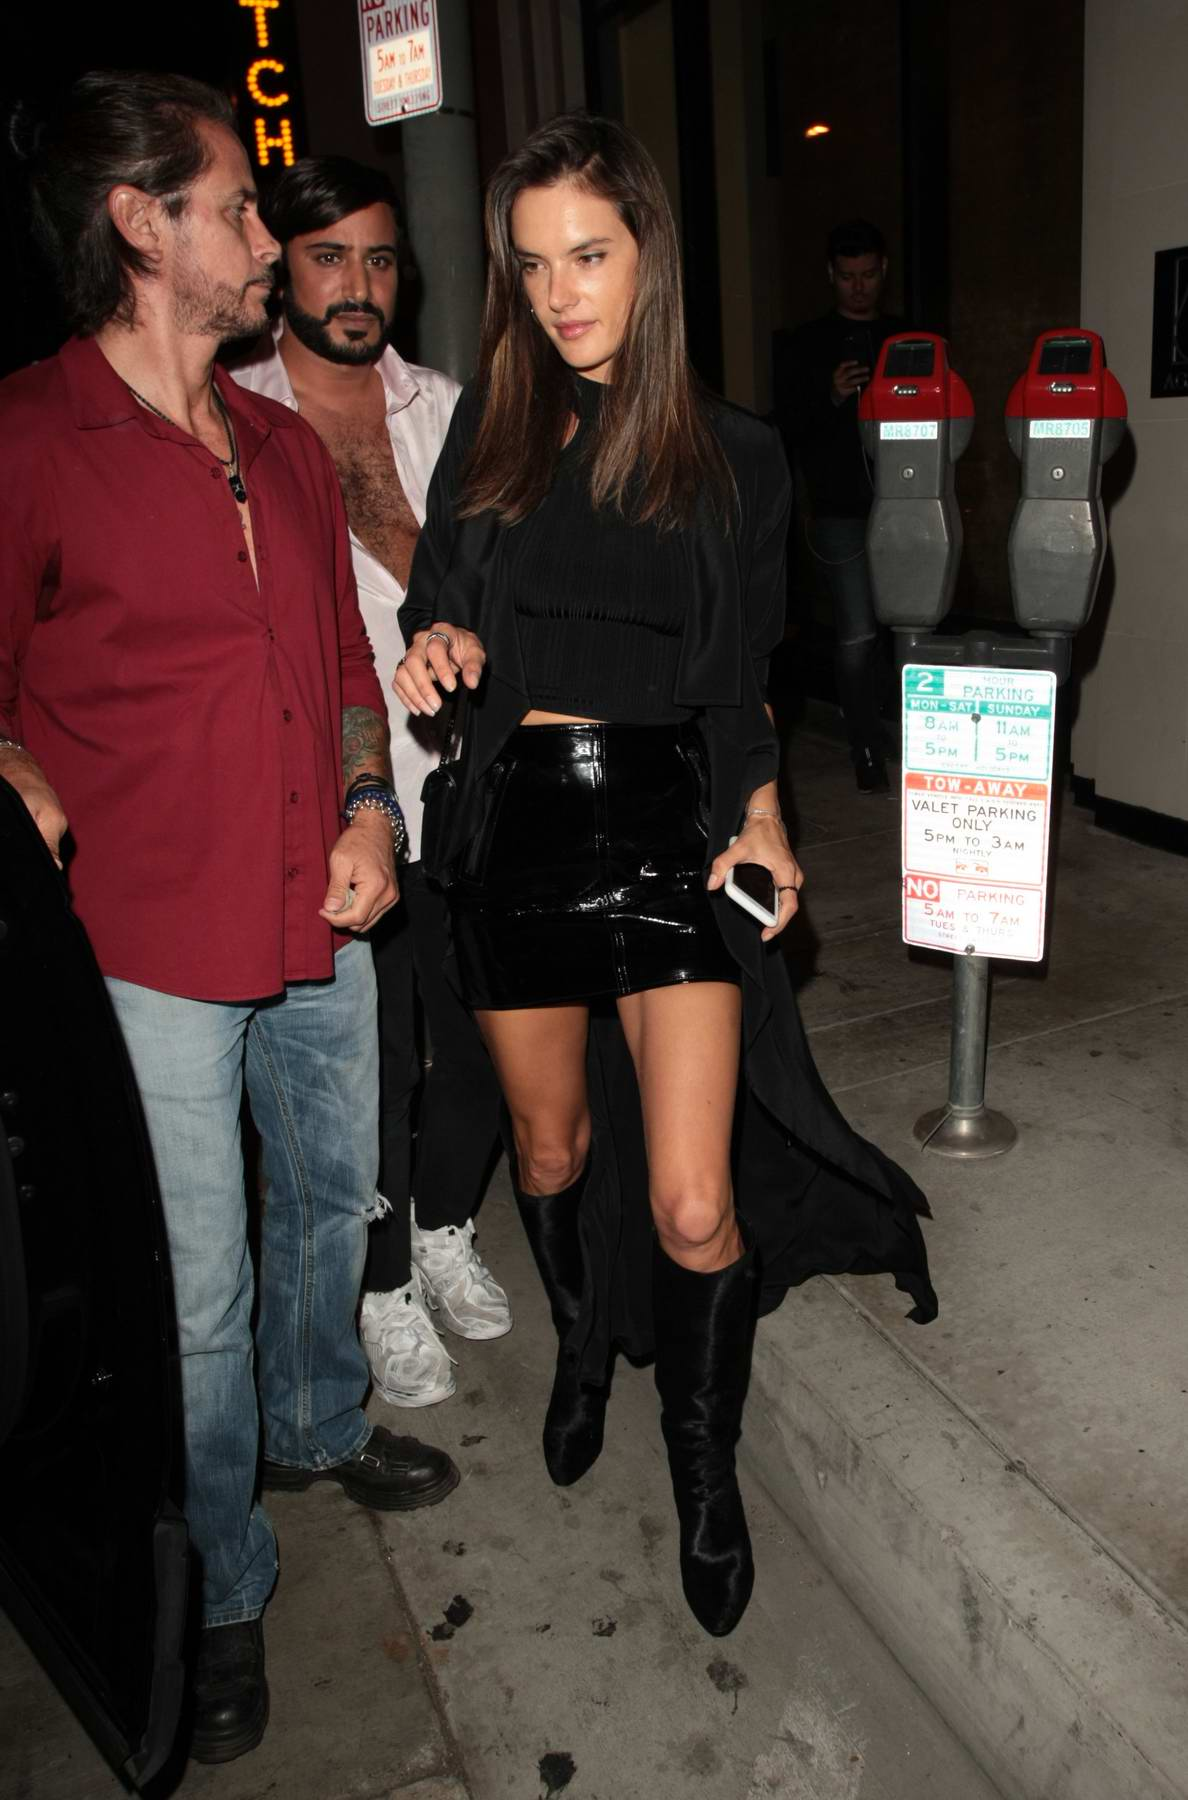 Alessandra Ambrosio is spotted having dinner with friends at Catch in West Hollywood, Los Angeles